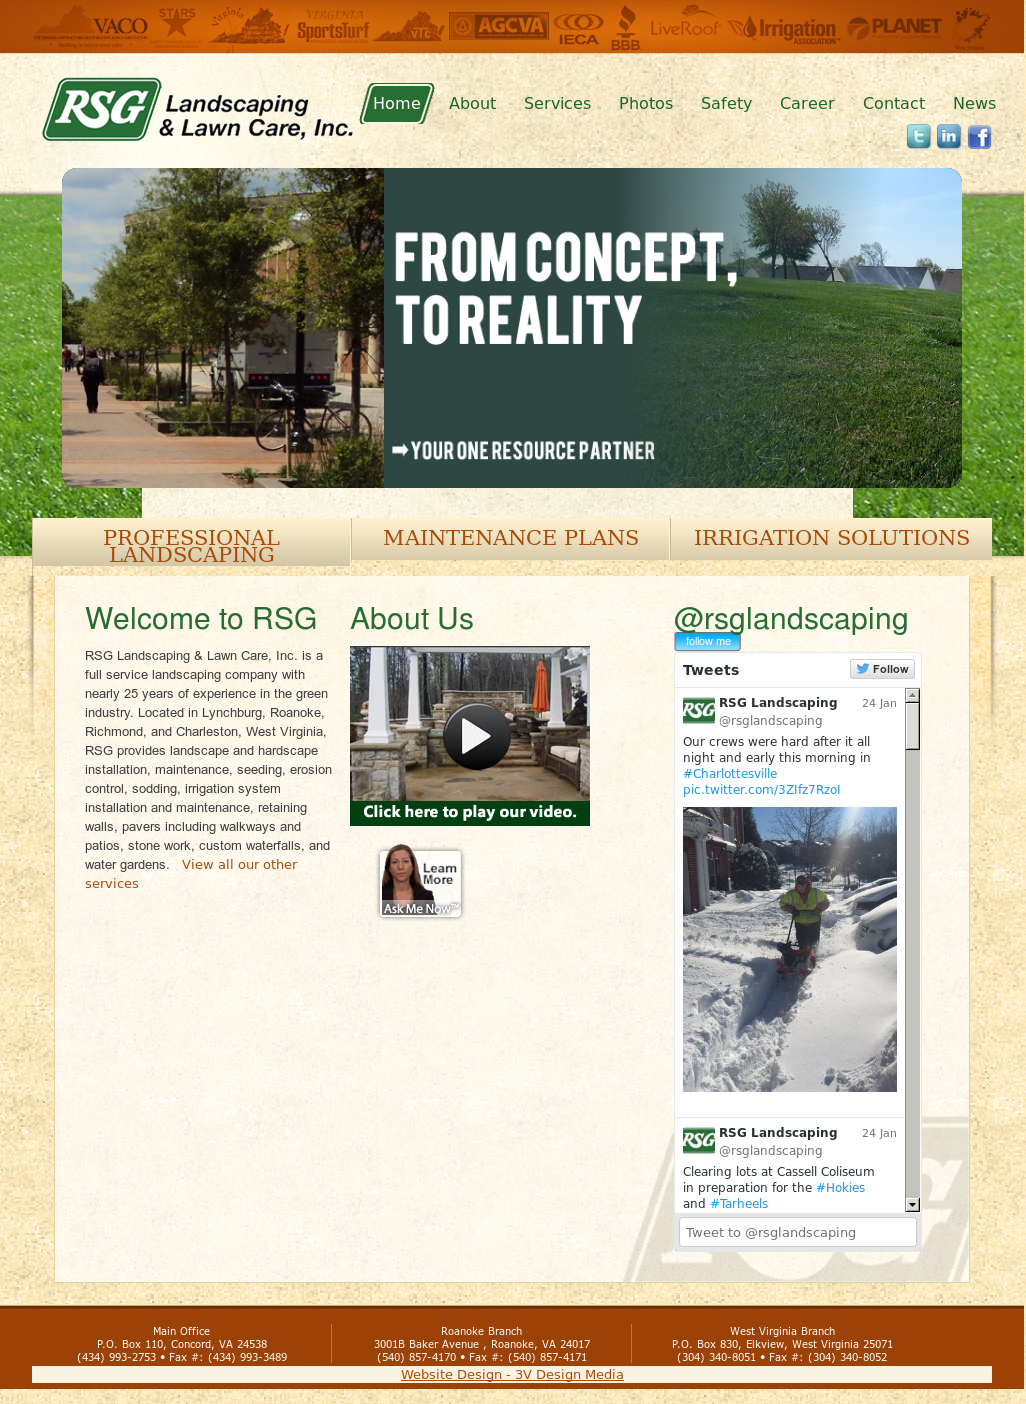 R S G Landscaping Lawn Care Compeors Revenue And Employees Owler Company Profile